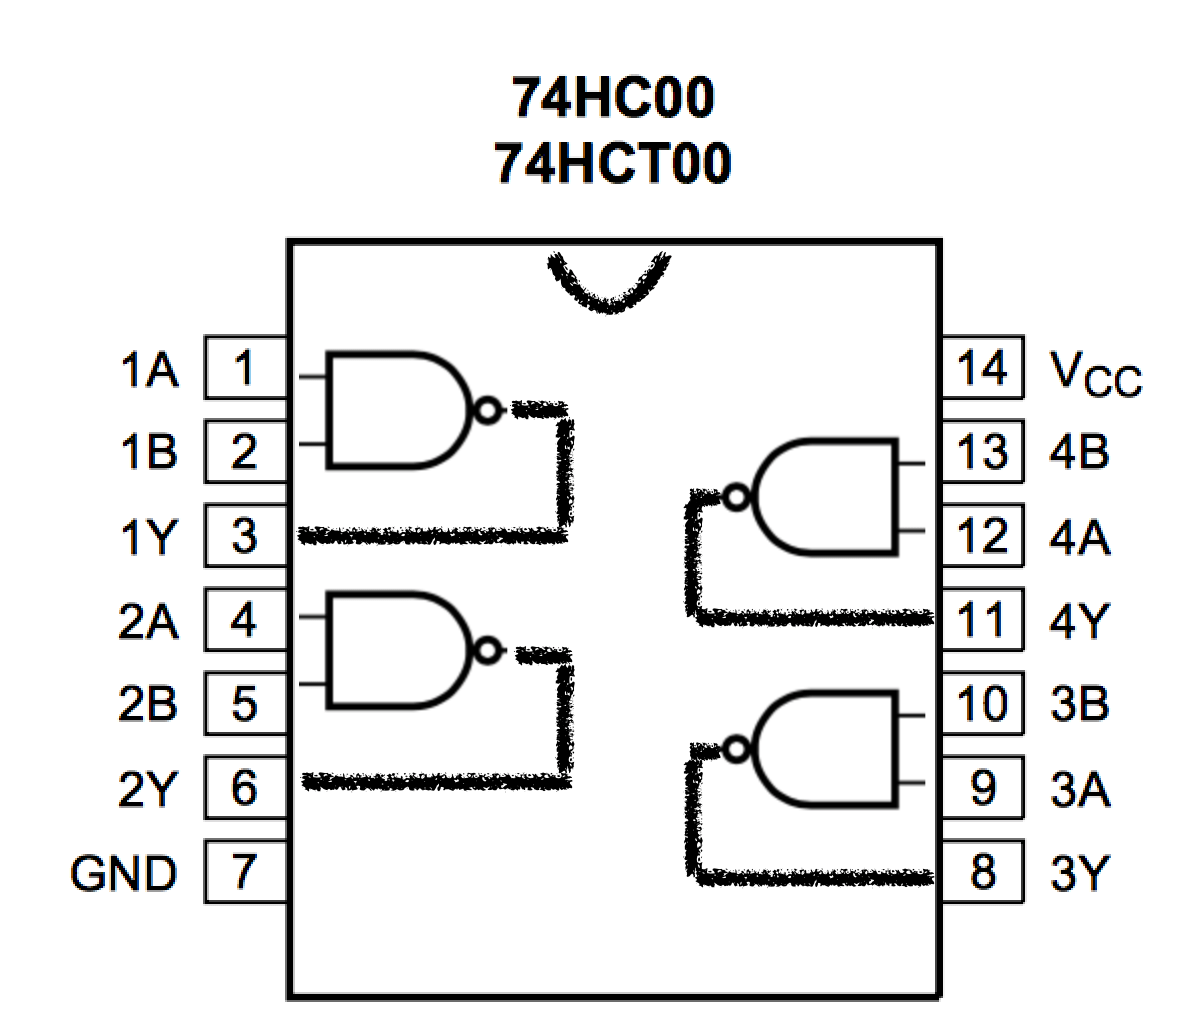 Building A 4 Bit Shift Register From Nand Gates For Gpio Output Port Expansion On A Raspberry